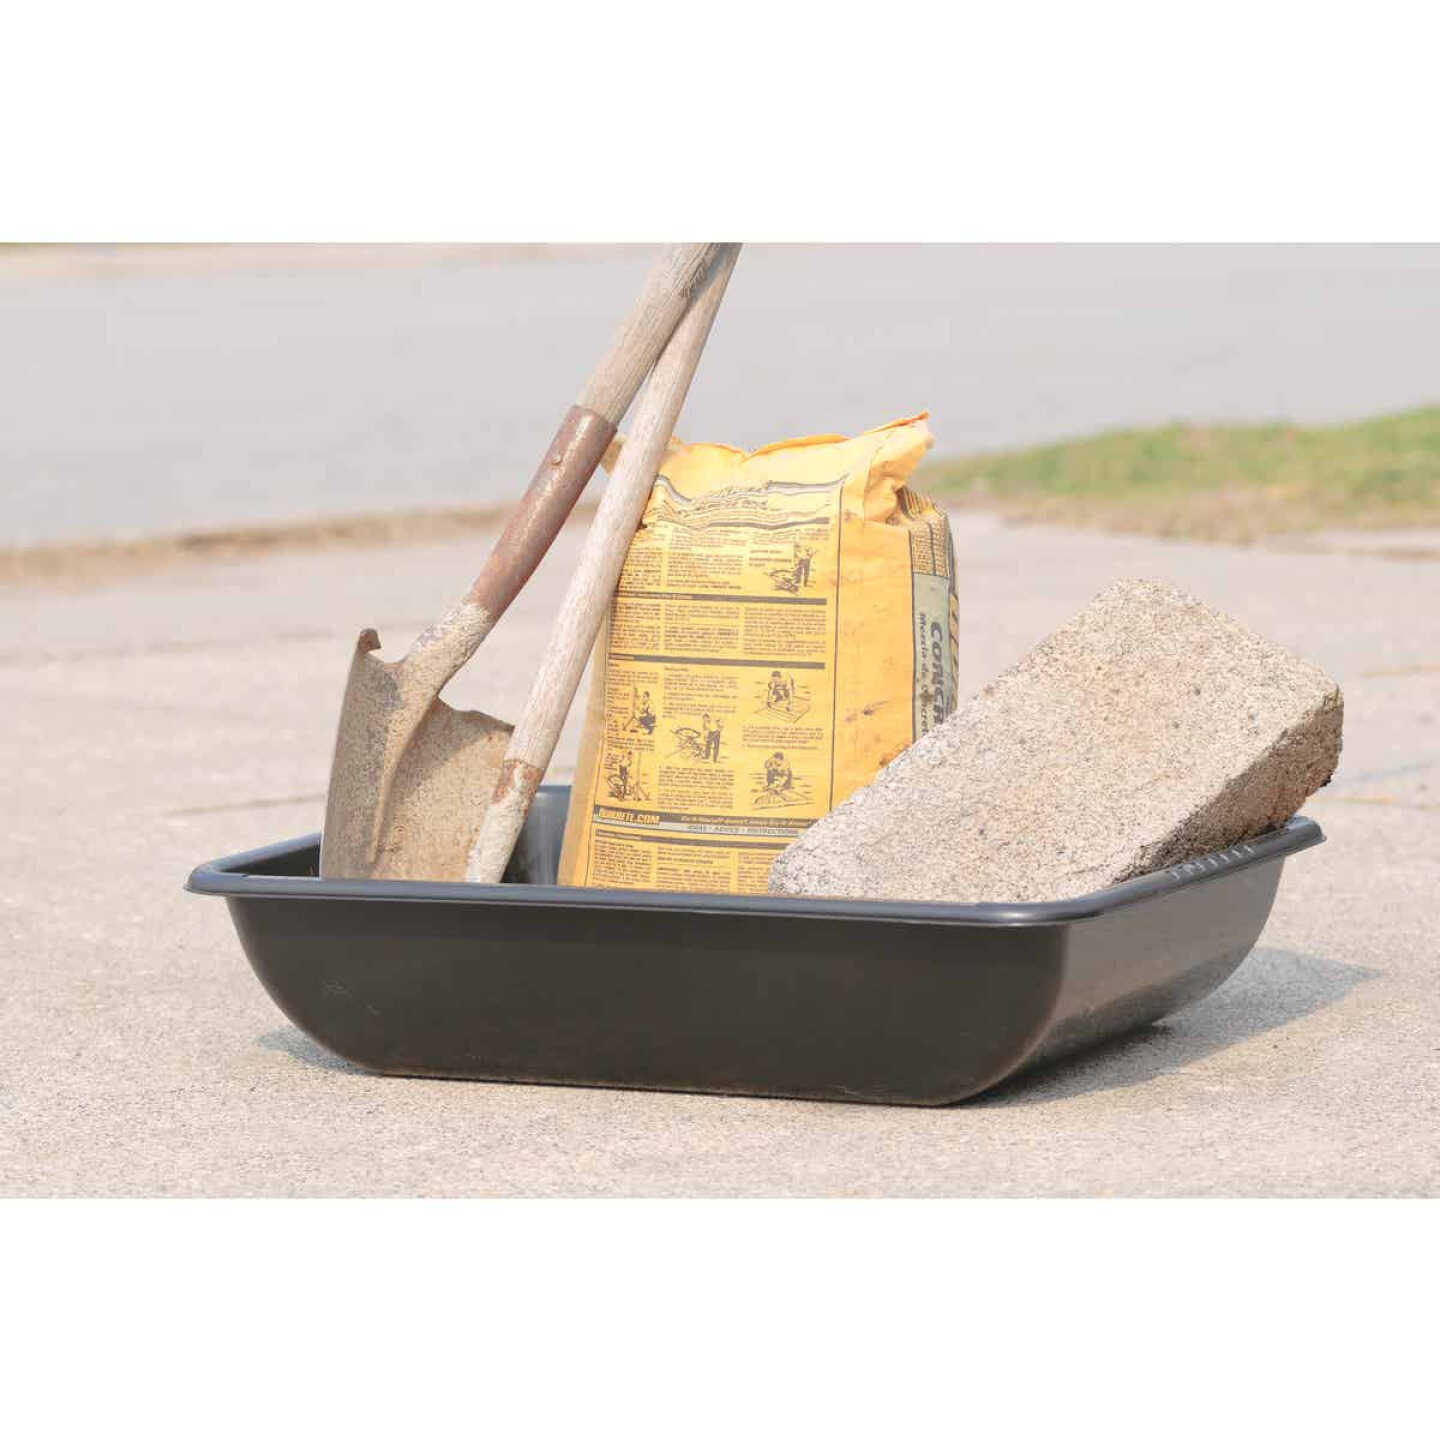 Heavy-Duty Large 37.6 In. Concrete Mixing Tub Image 14